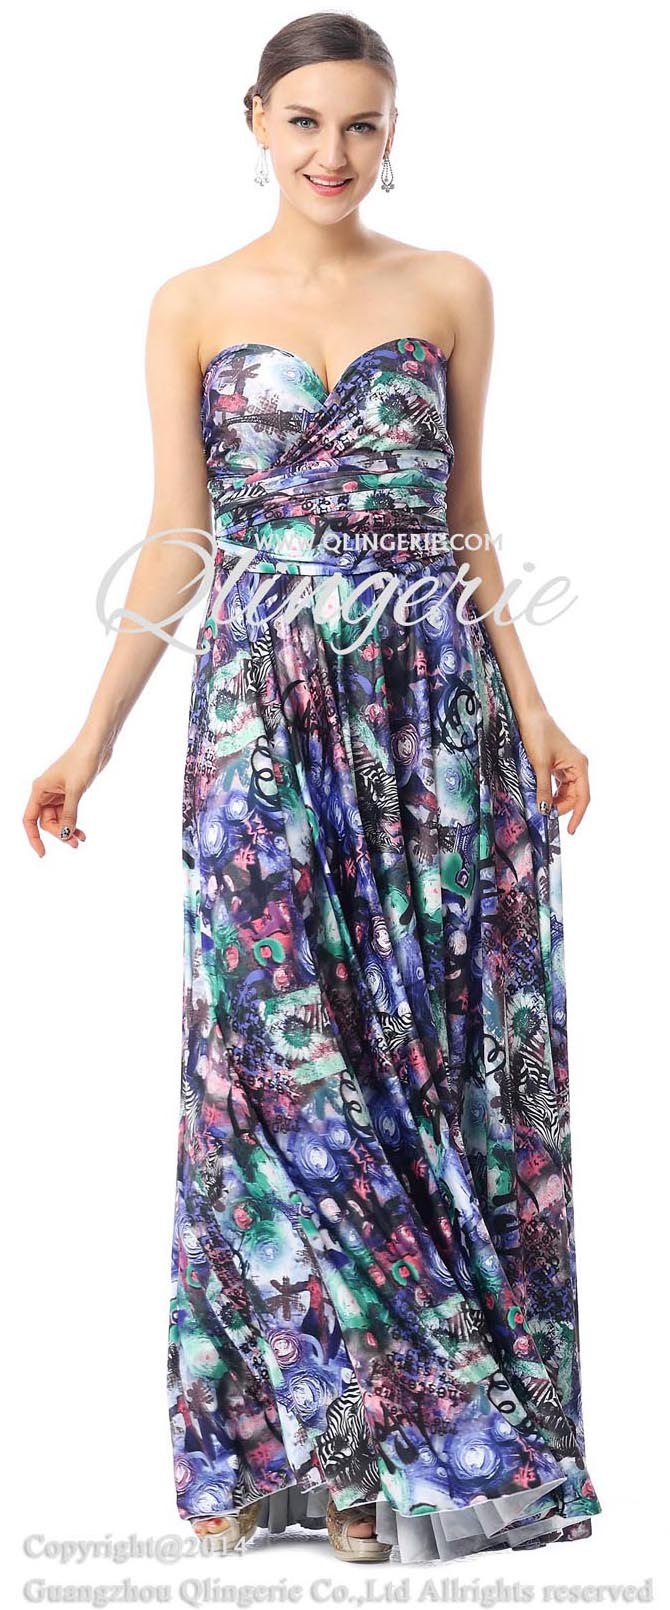 Floral Print Knit Dresses, Evening Dresses for Cheap, Women